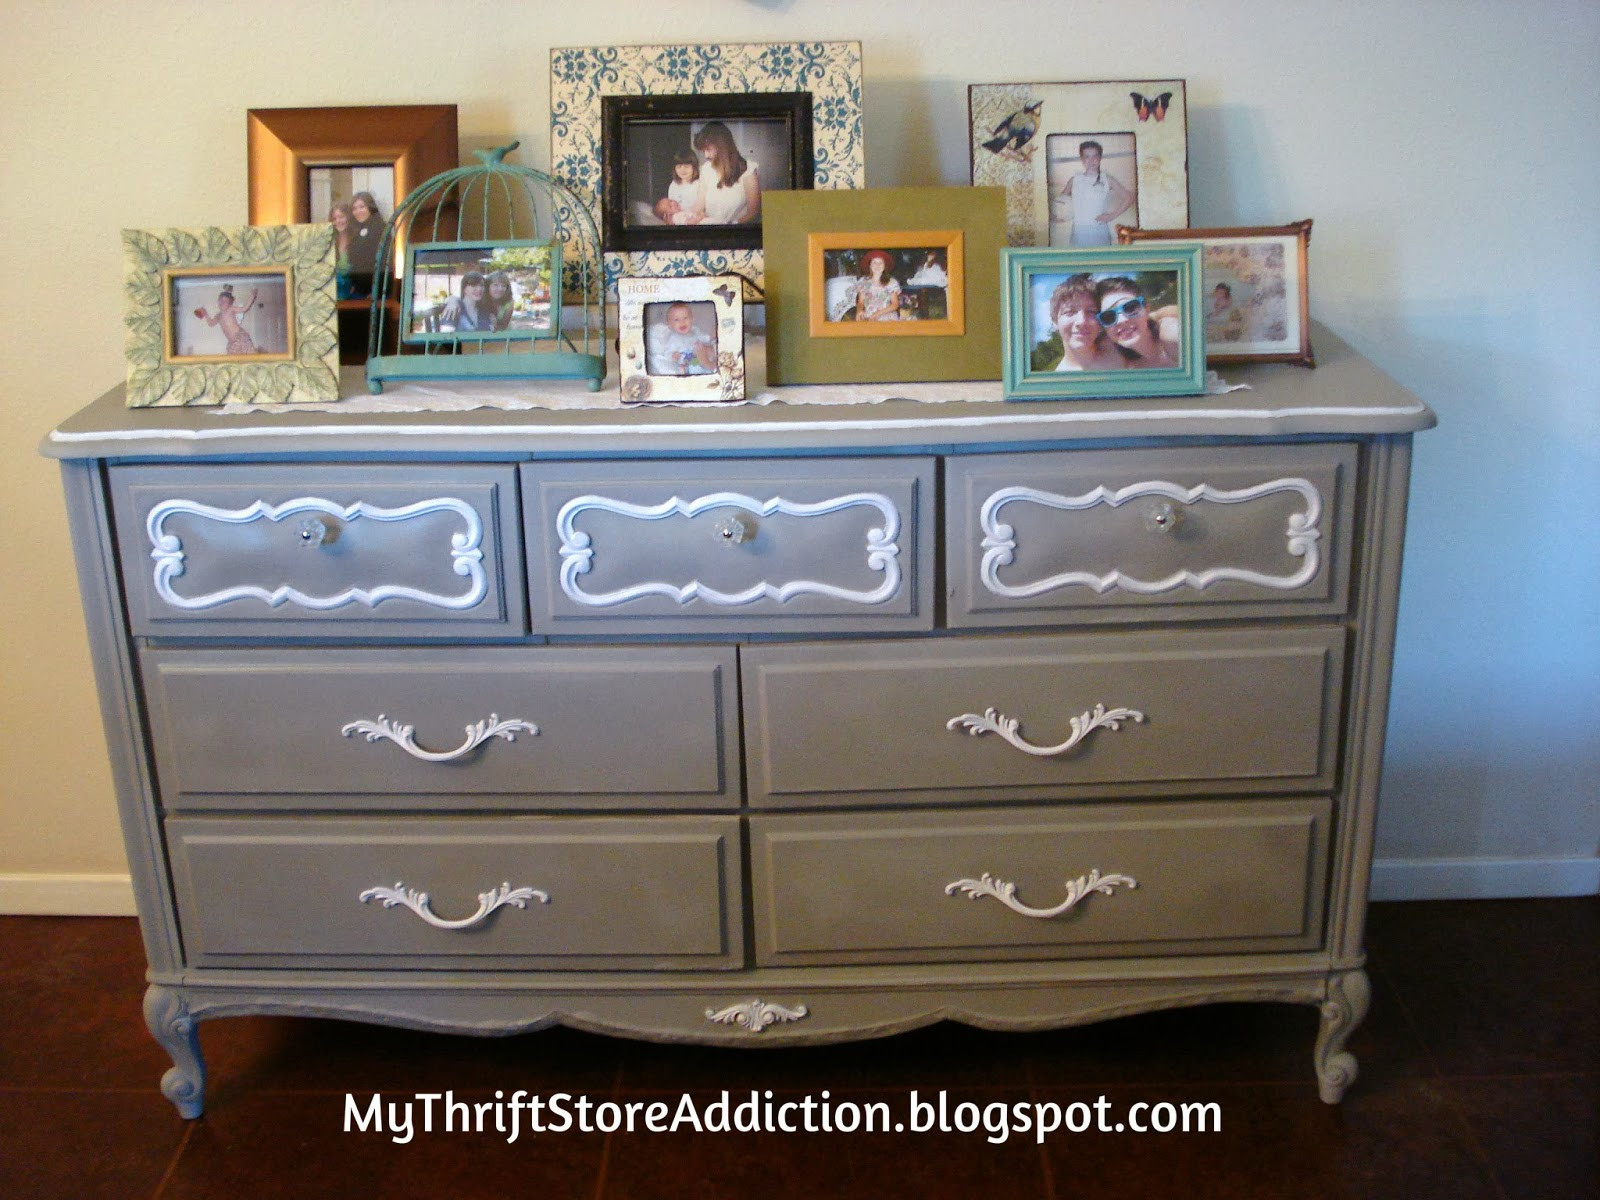 What Was I Thinking?! mythriftstoreaddiction.blogspot.com Give a $10 yard sale dresser a luxe look for less!